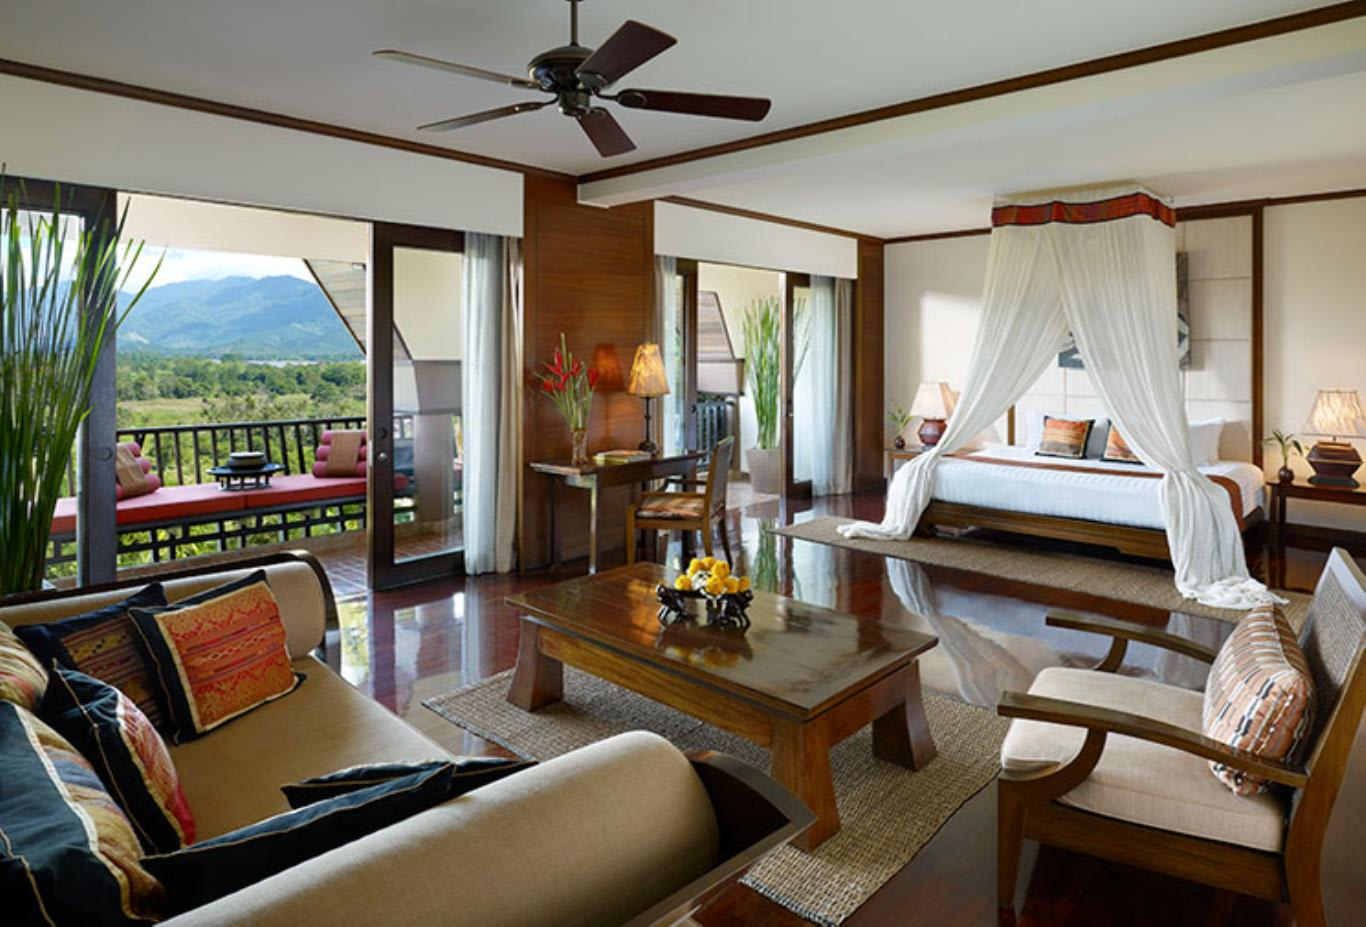 3 Country View Suite interior